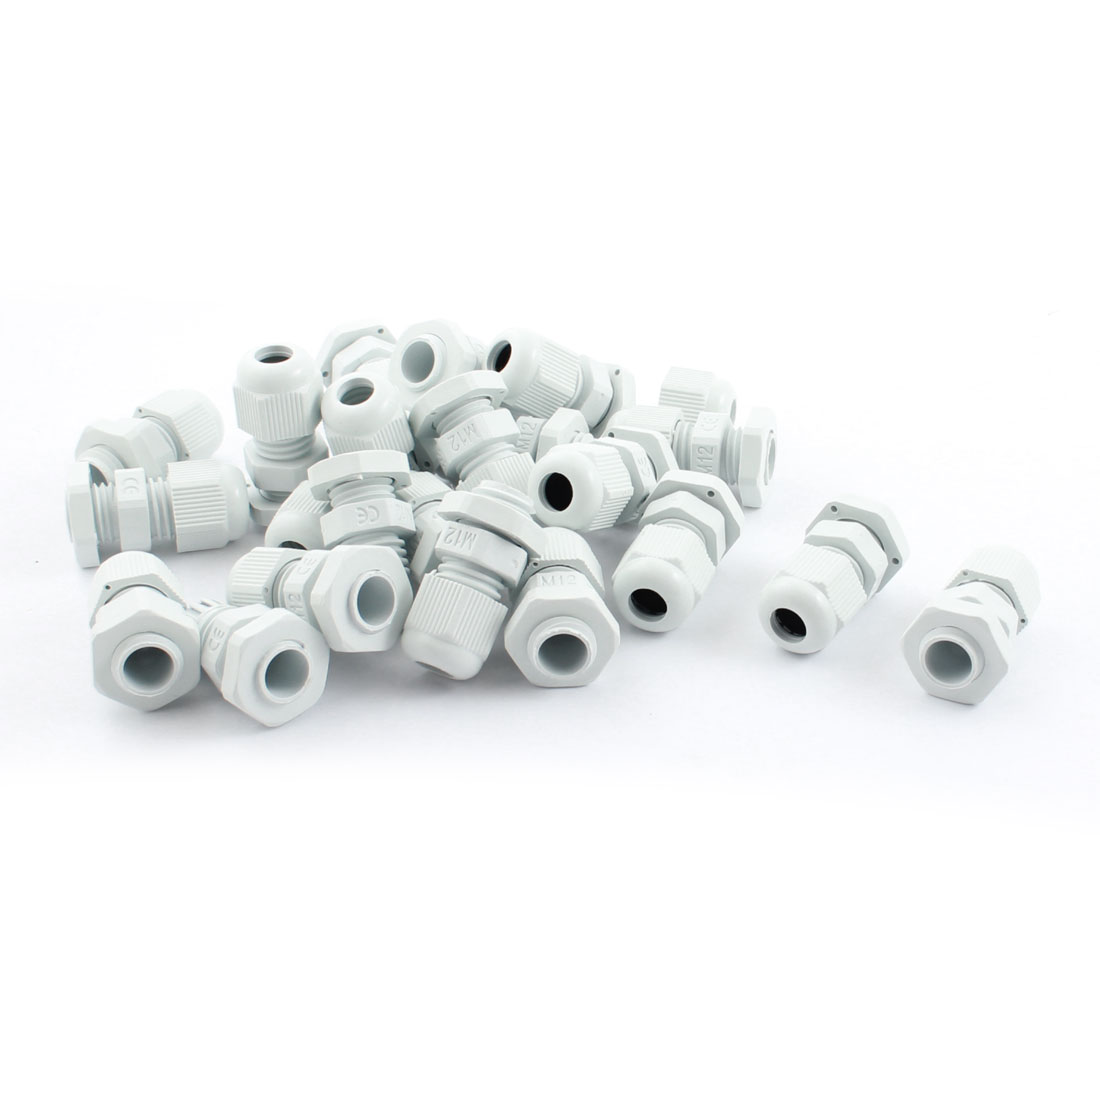 20Pcs M12 Locknut Male Thread 3-6.5mm Range Adjustable White Plastic Waterproof Cable Gland Cord Grip Connector